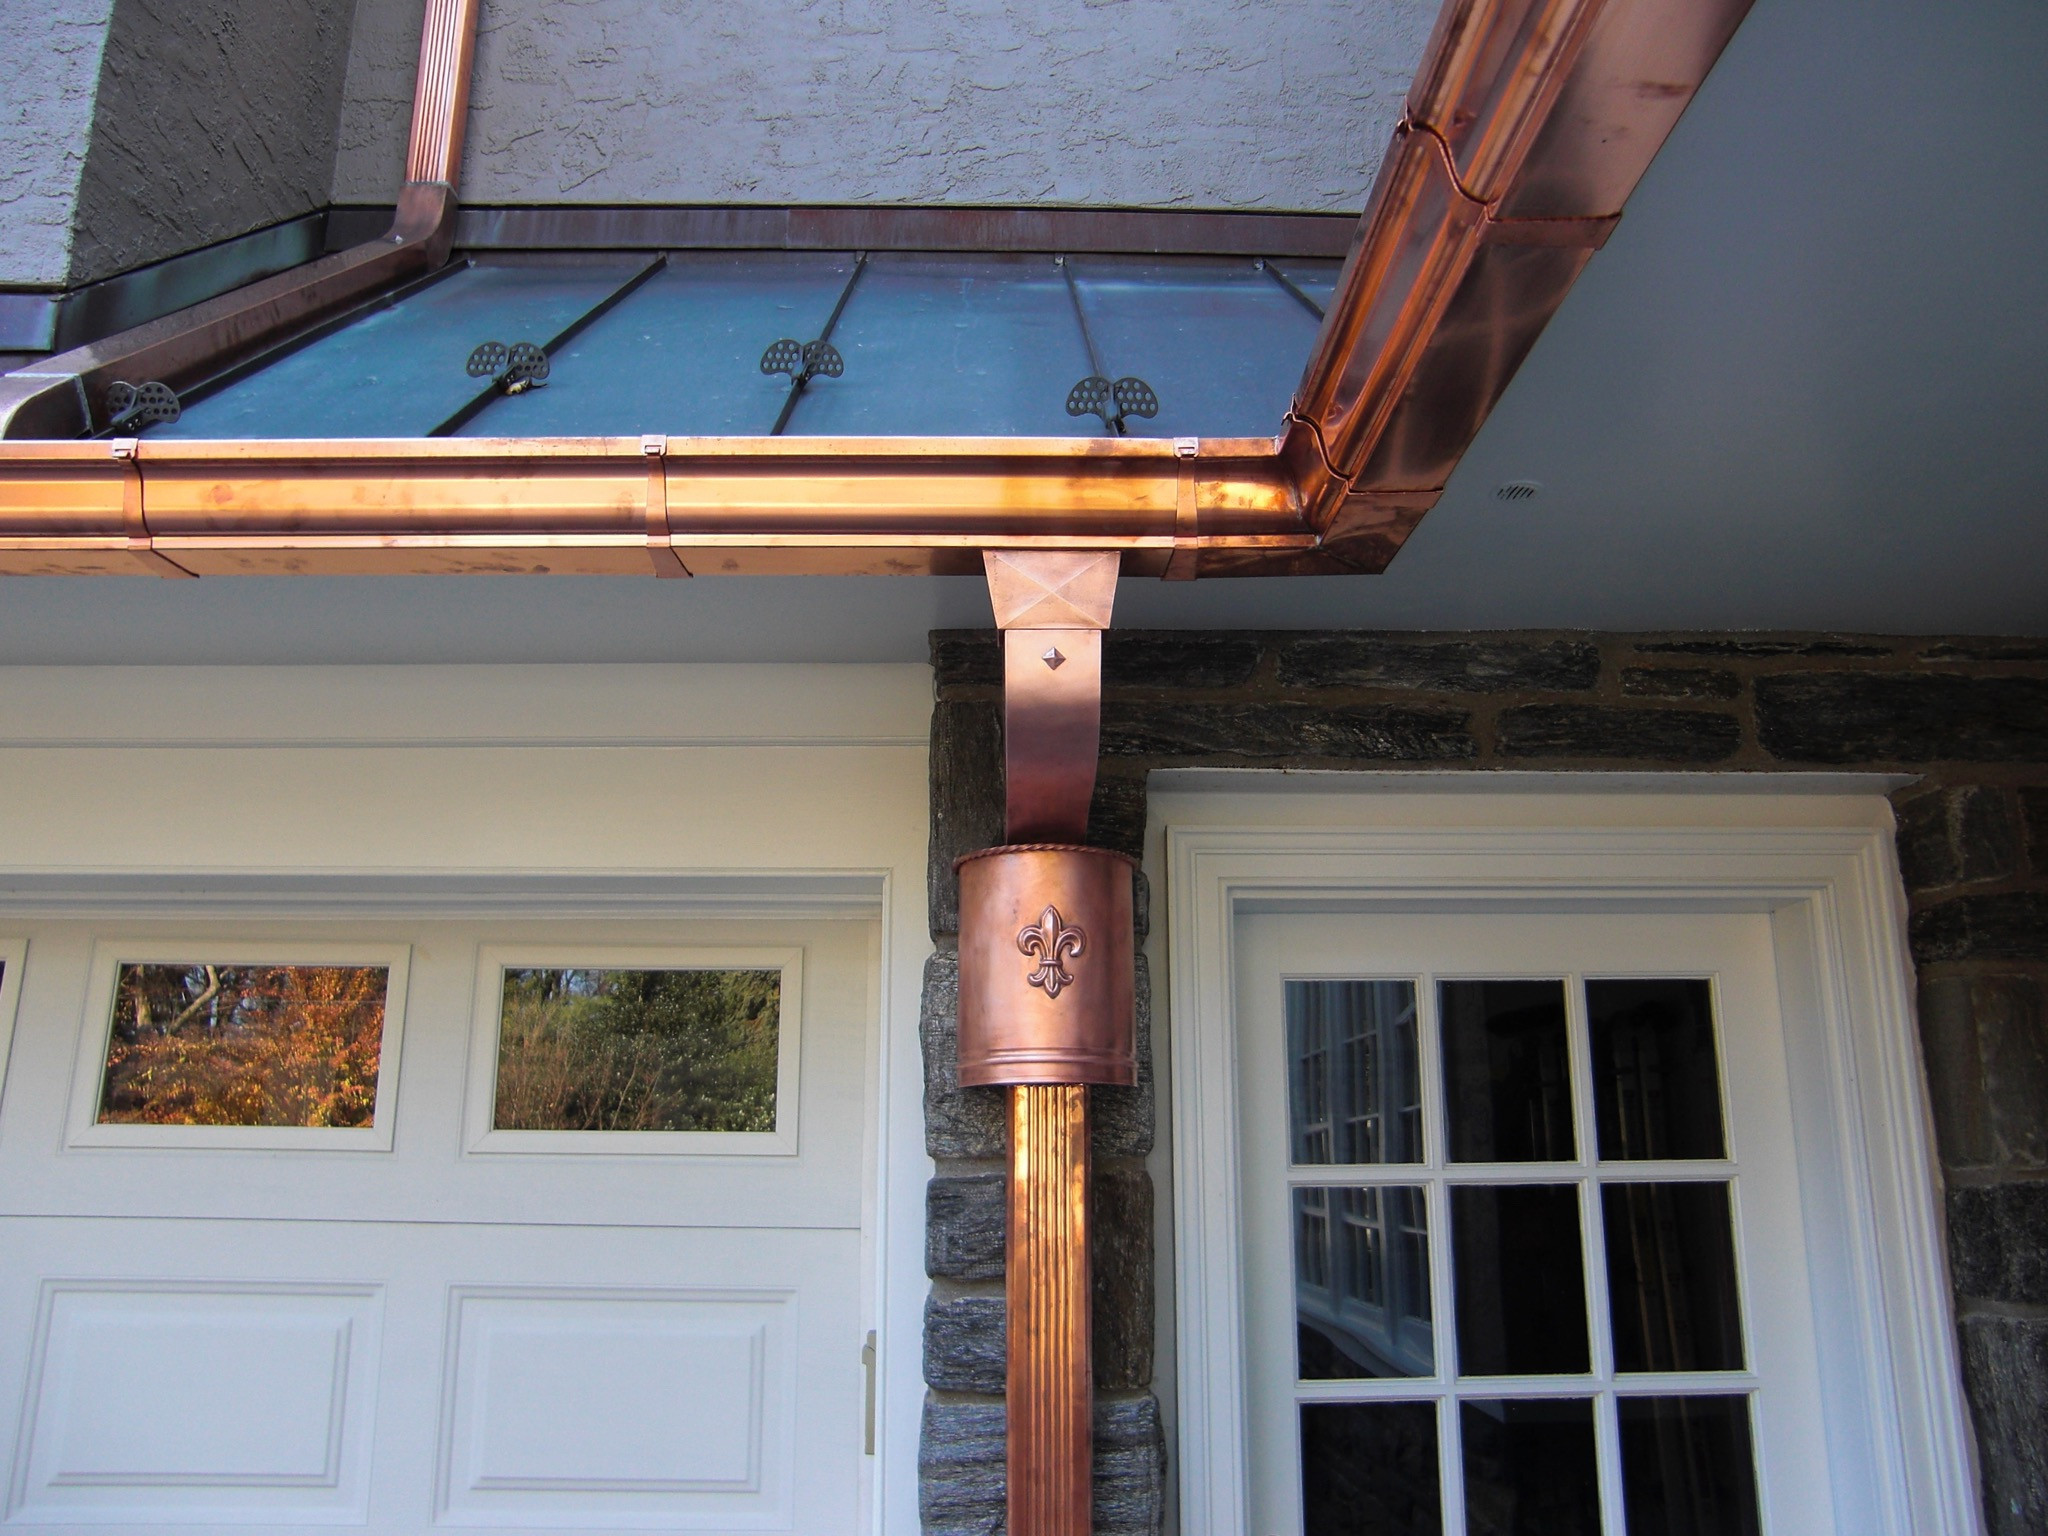 12. Copper Gutter and Spouting